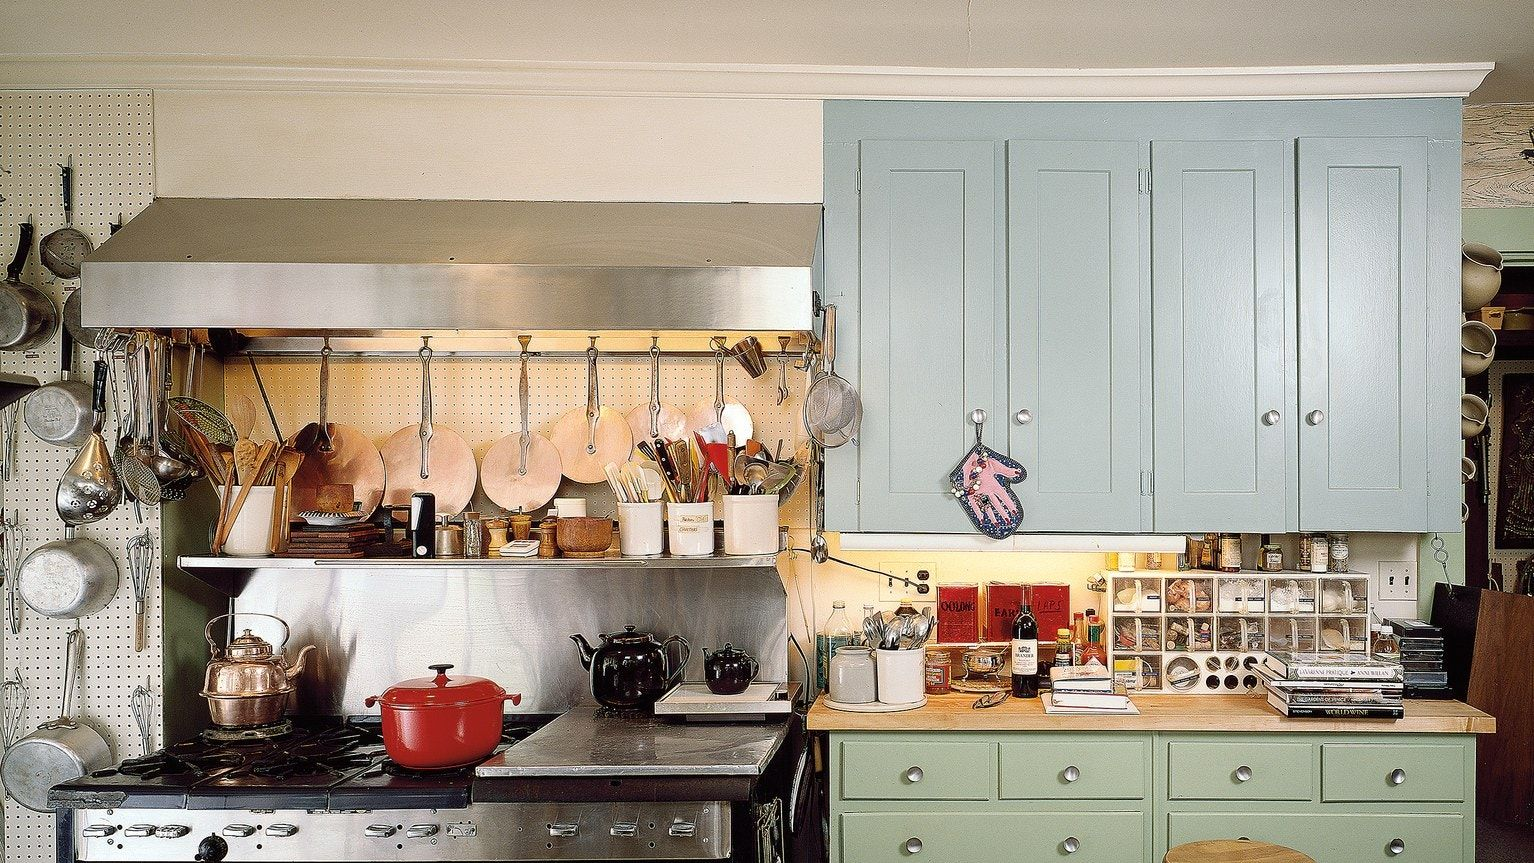 Inside Julia Child's \*Actual\* Home Kitchen in 2020